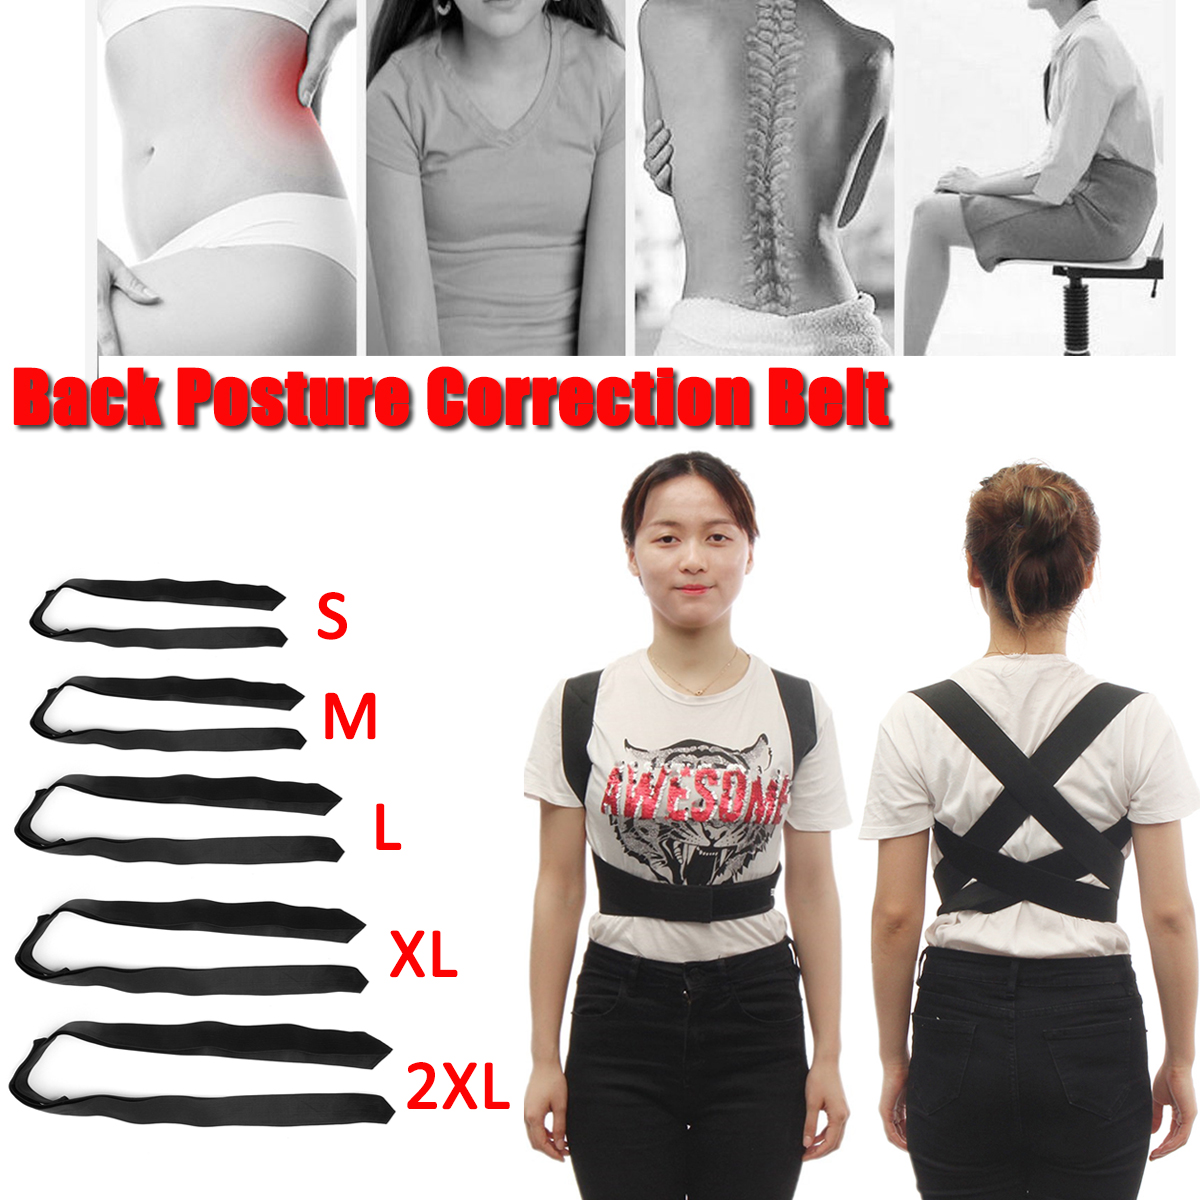 Adults Youth Back Posture Correction Belt Support Sport Corrector Brace Belt Shoulder Spine Supports Health Corrective Men Women